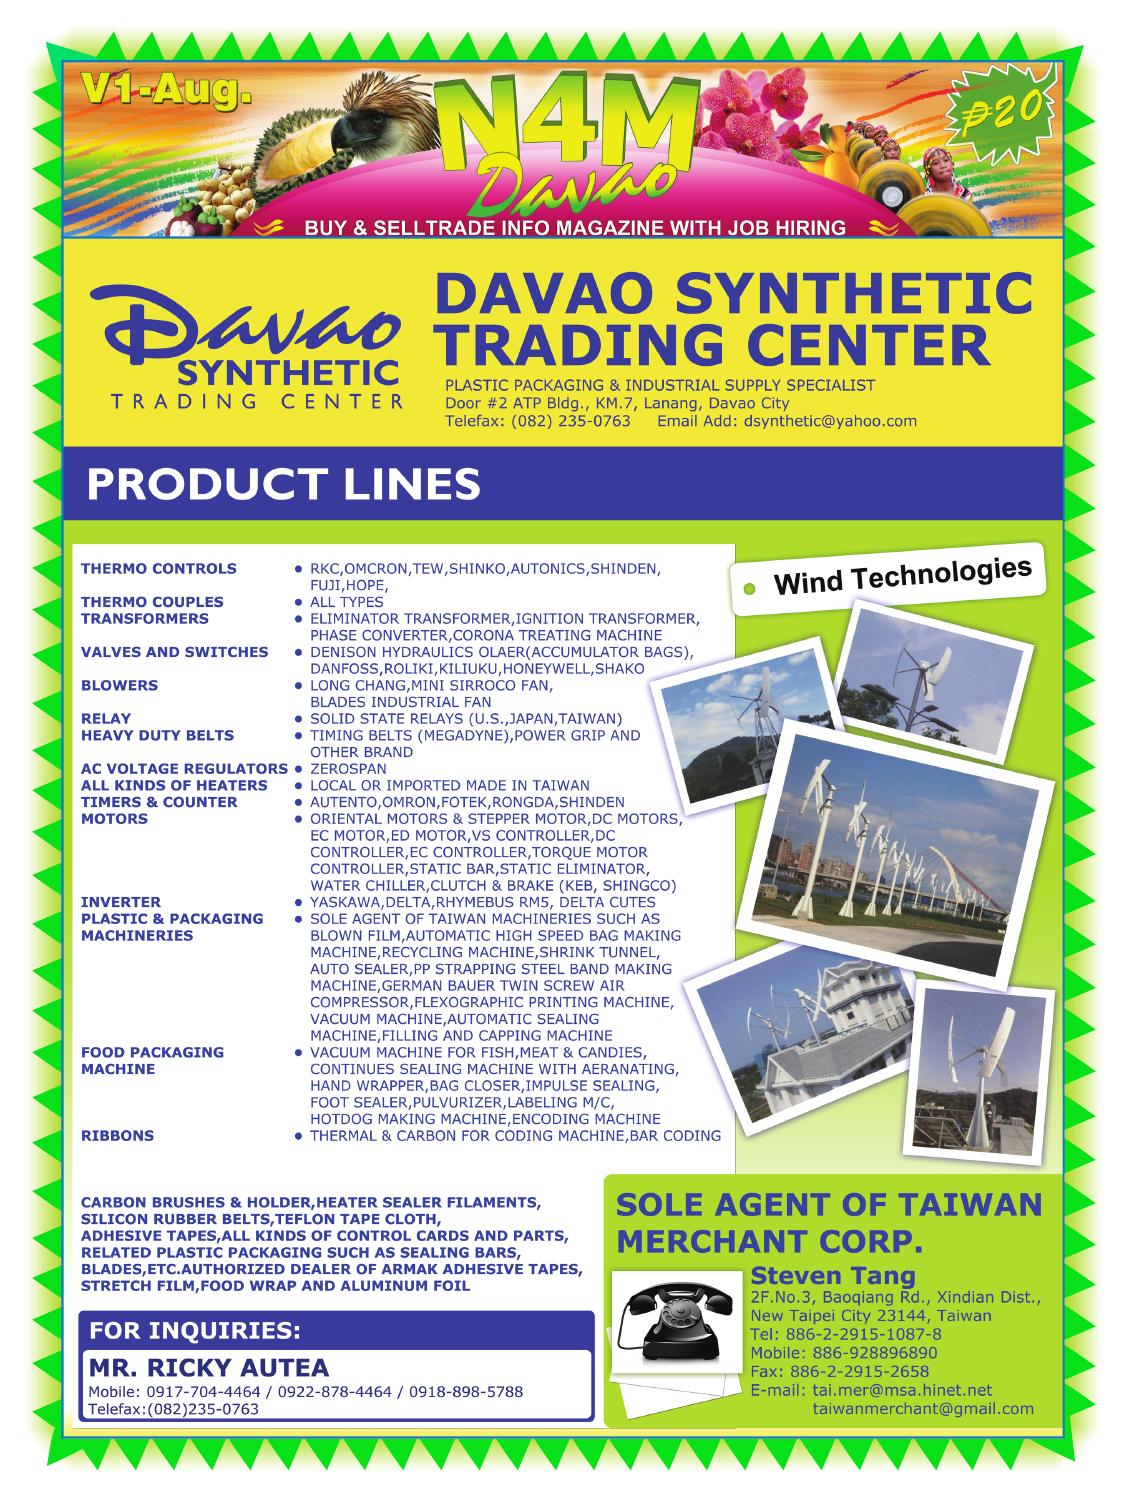 Sala Set In Davao City N4m Davao August Issue